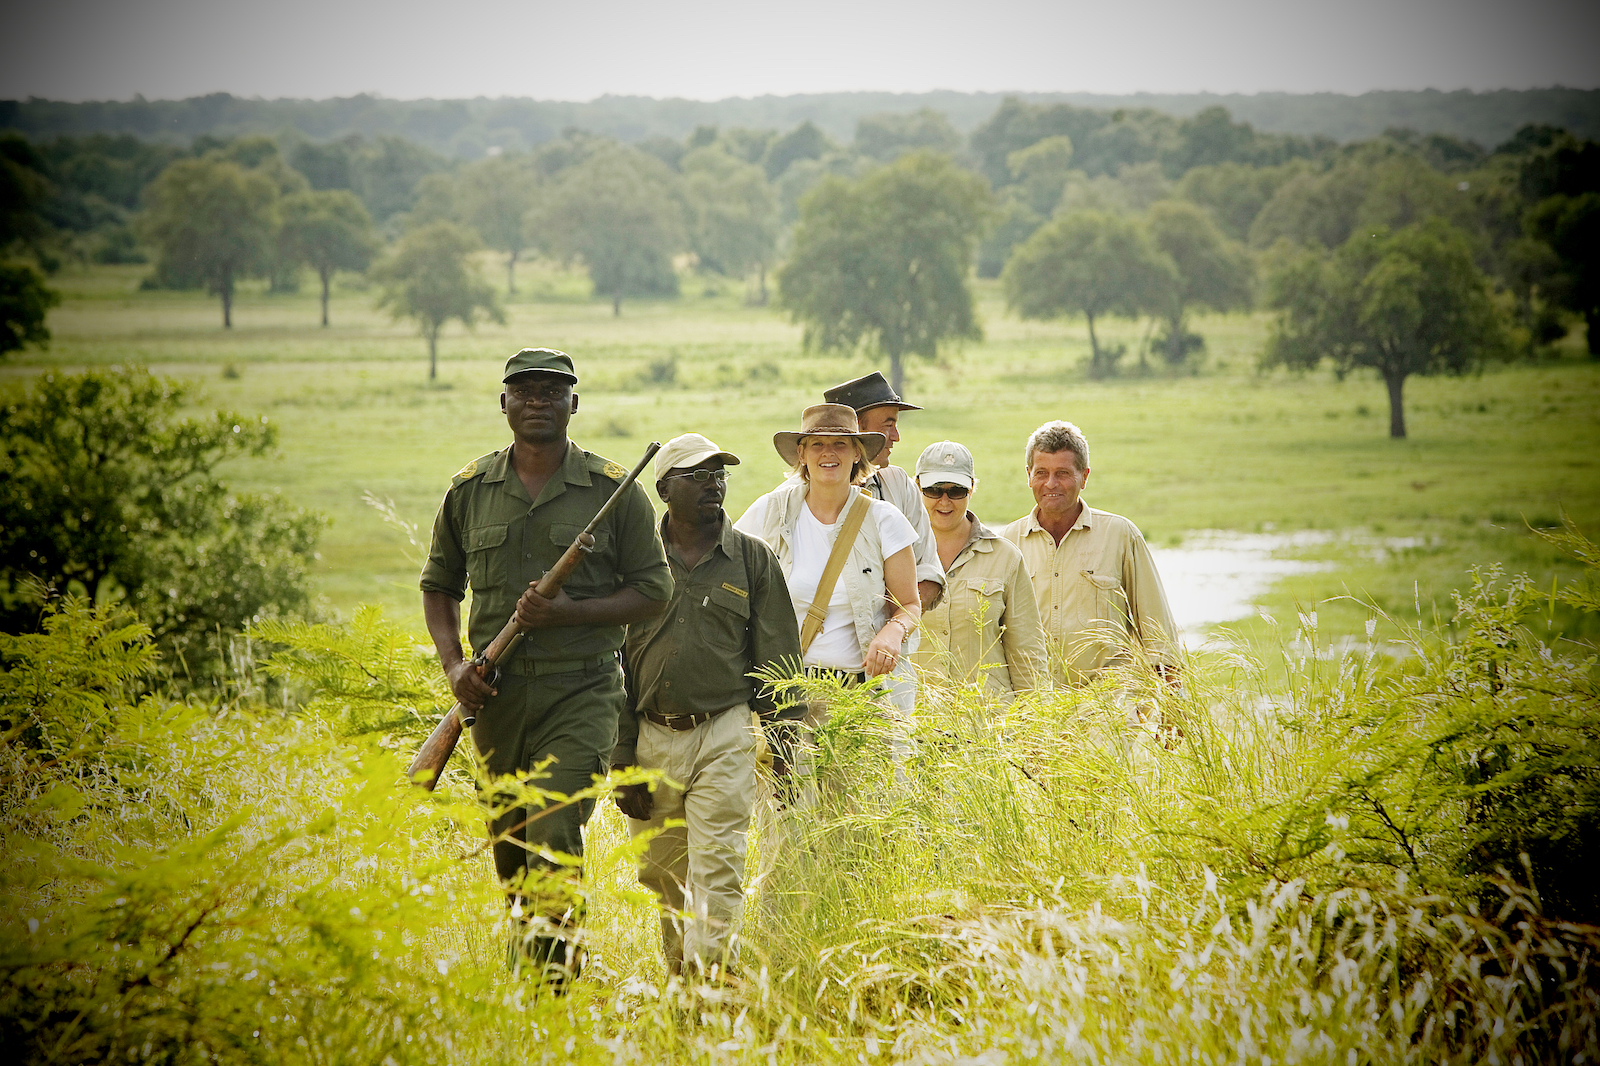 Buschwanderungen und Wander-Safari durch South Luangwa, Puku Ridge Camp, Sambia